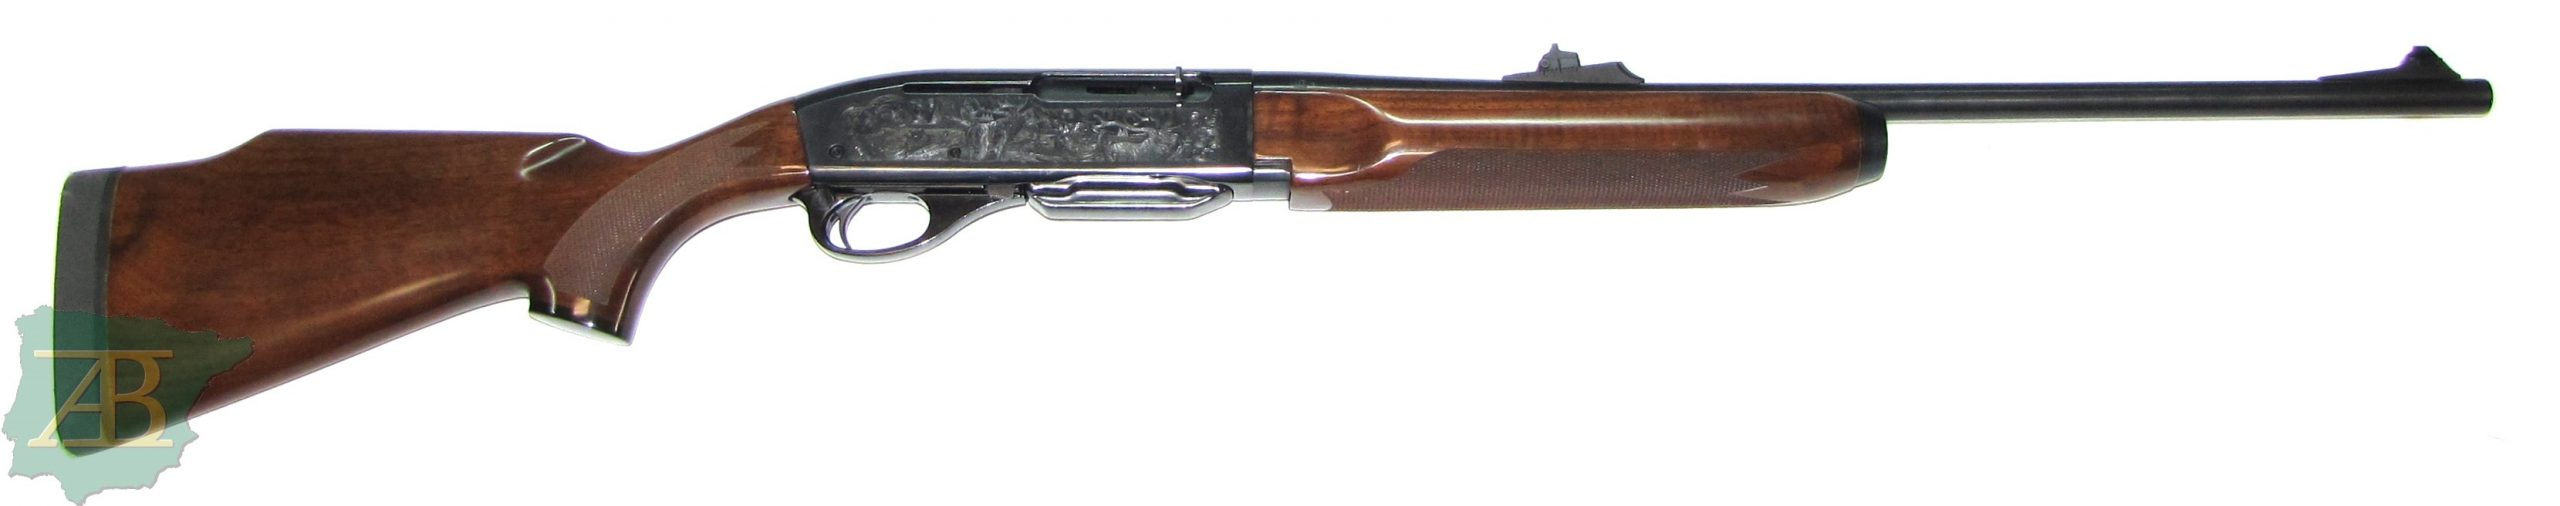 RIFLE SEMIAUTOMÁTICO DE CAZA REMINGTON .30-06 SPRG Ref 5600